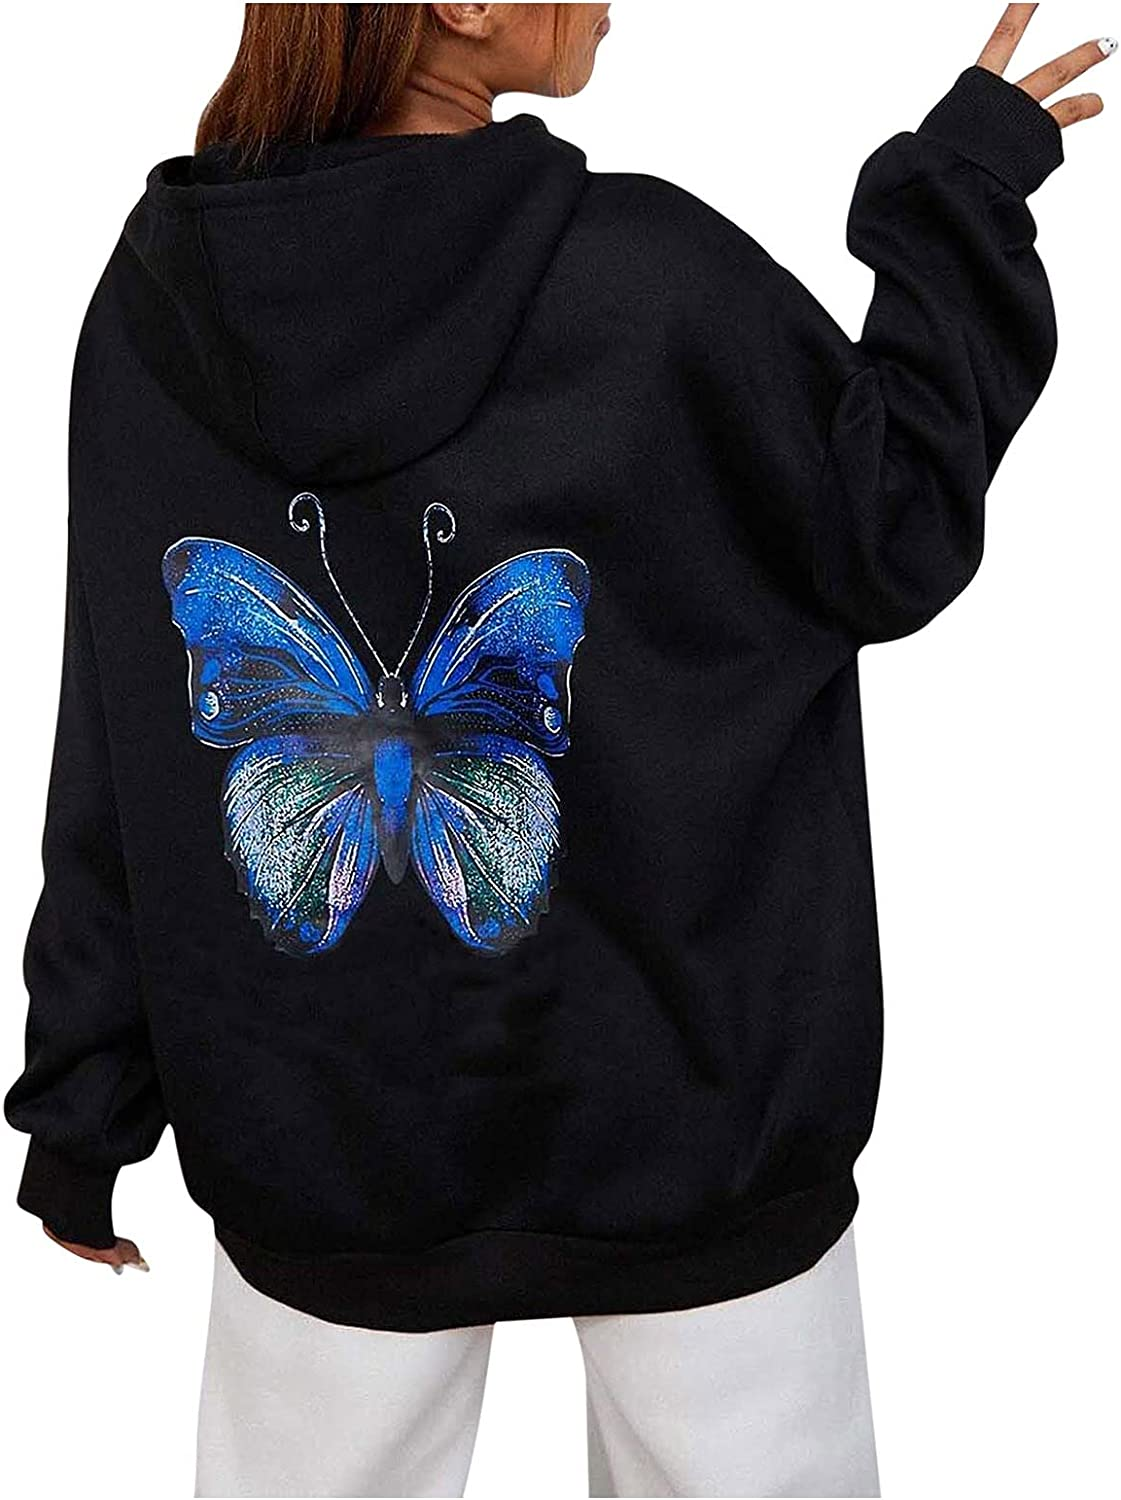 iCJJL Hooded Sweater for Women Pure Color Printing Casual Plus Size Hooded Sweater Fashion Long-Sleeved Pullover Sweatshirt